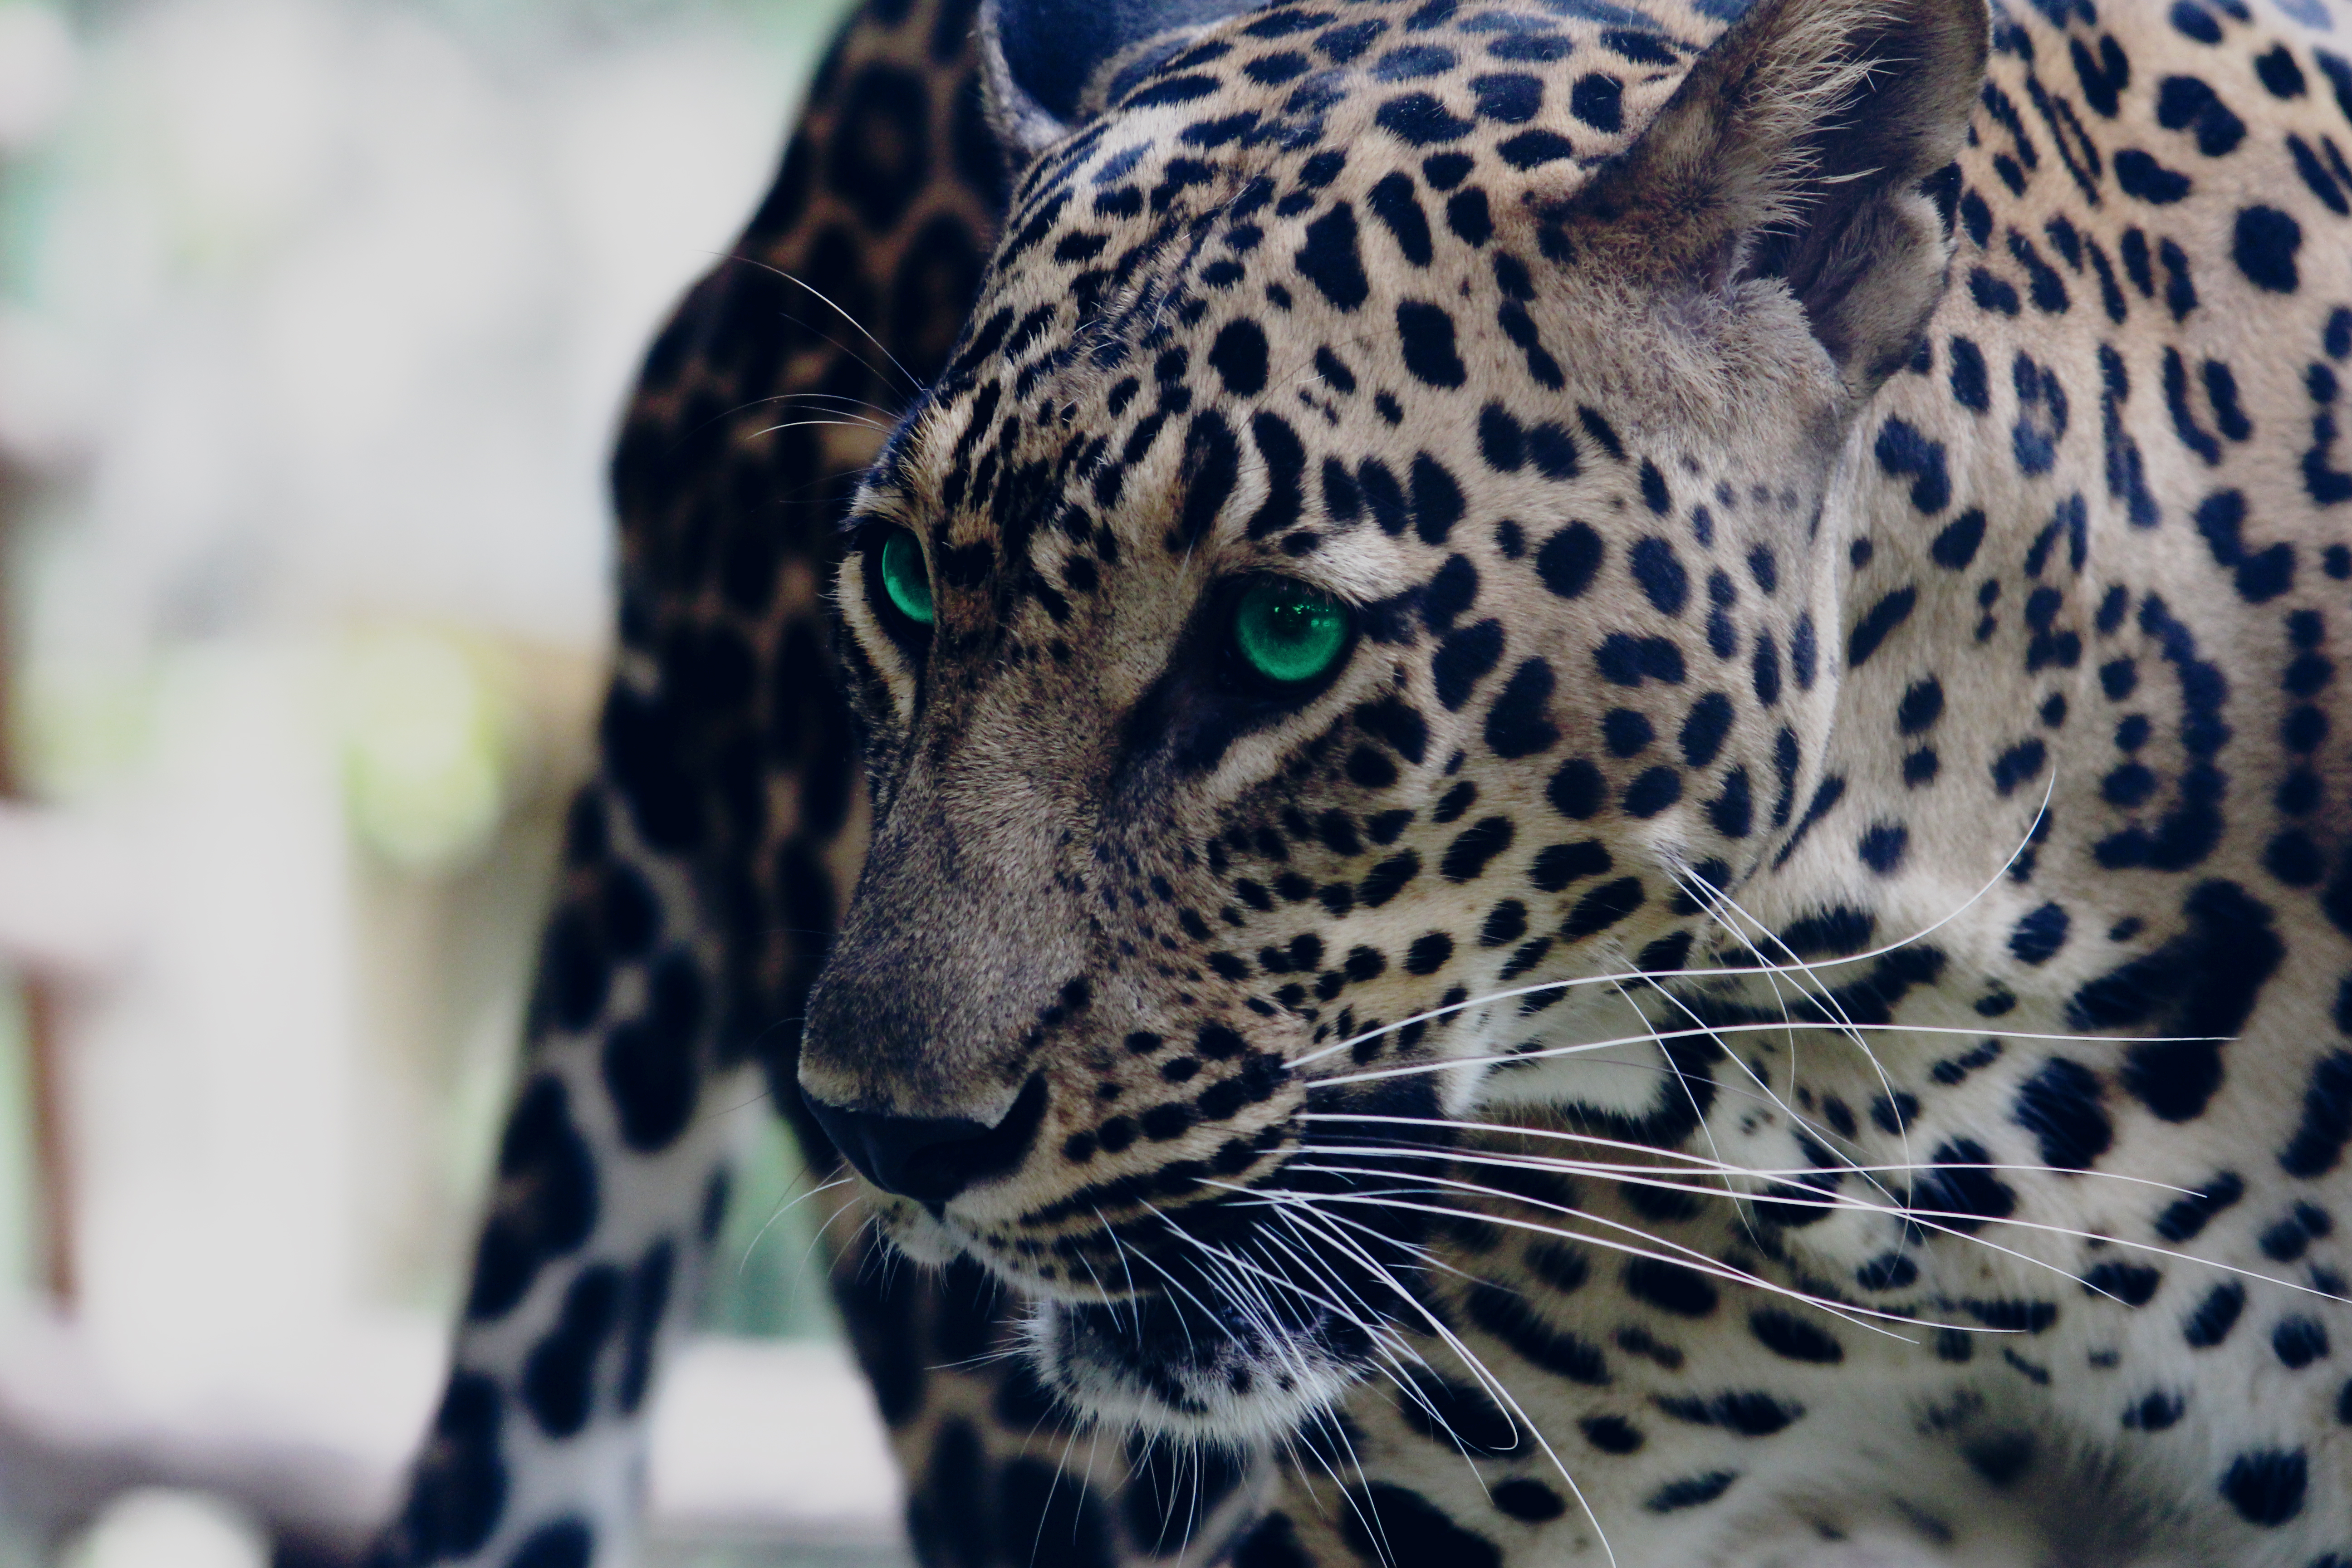 101577 download wallpaper Animals, Leopard, Green Eyed, Green-Eyed, Muzzle, Predator, Sight, Opinion screensavers and pictures for free